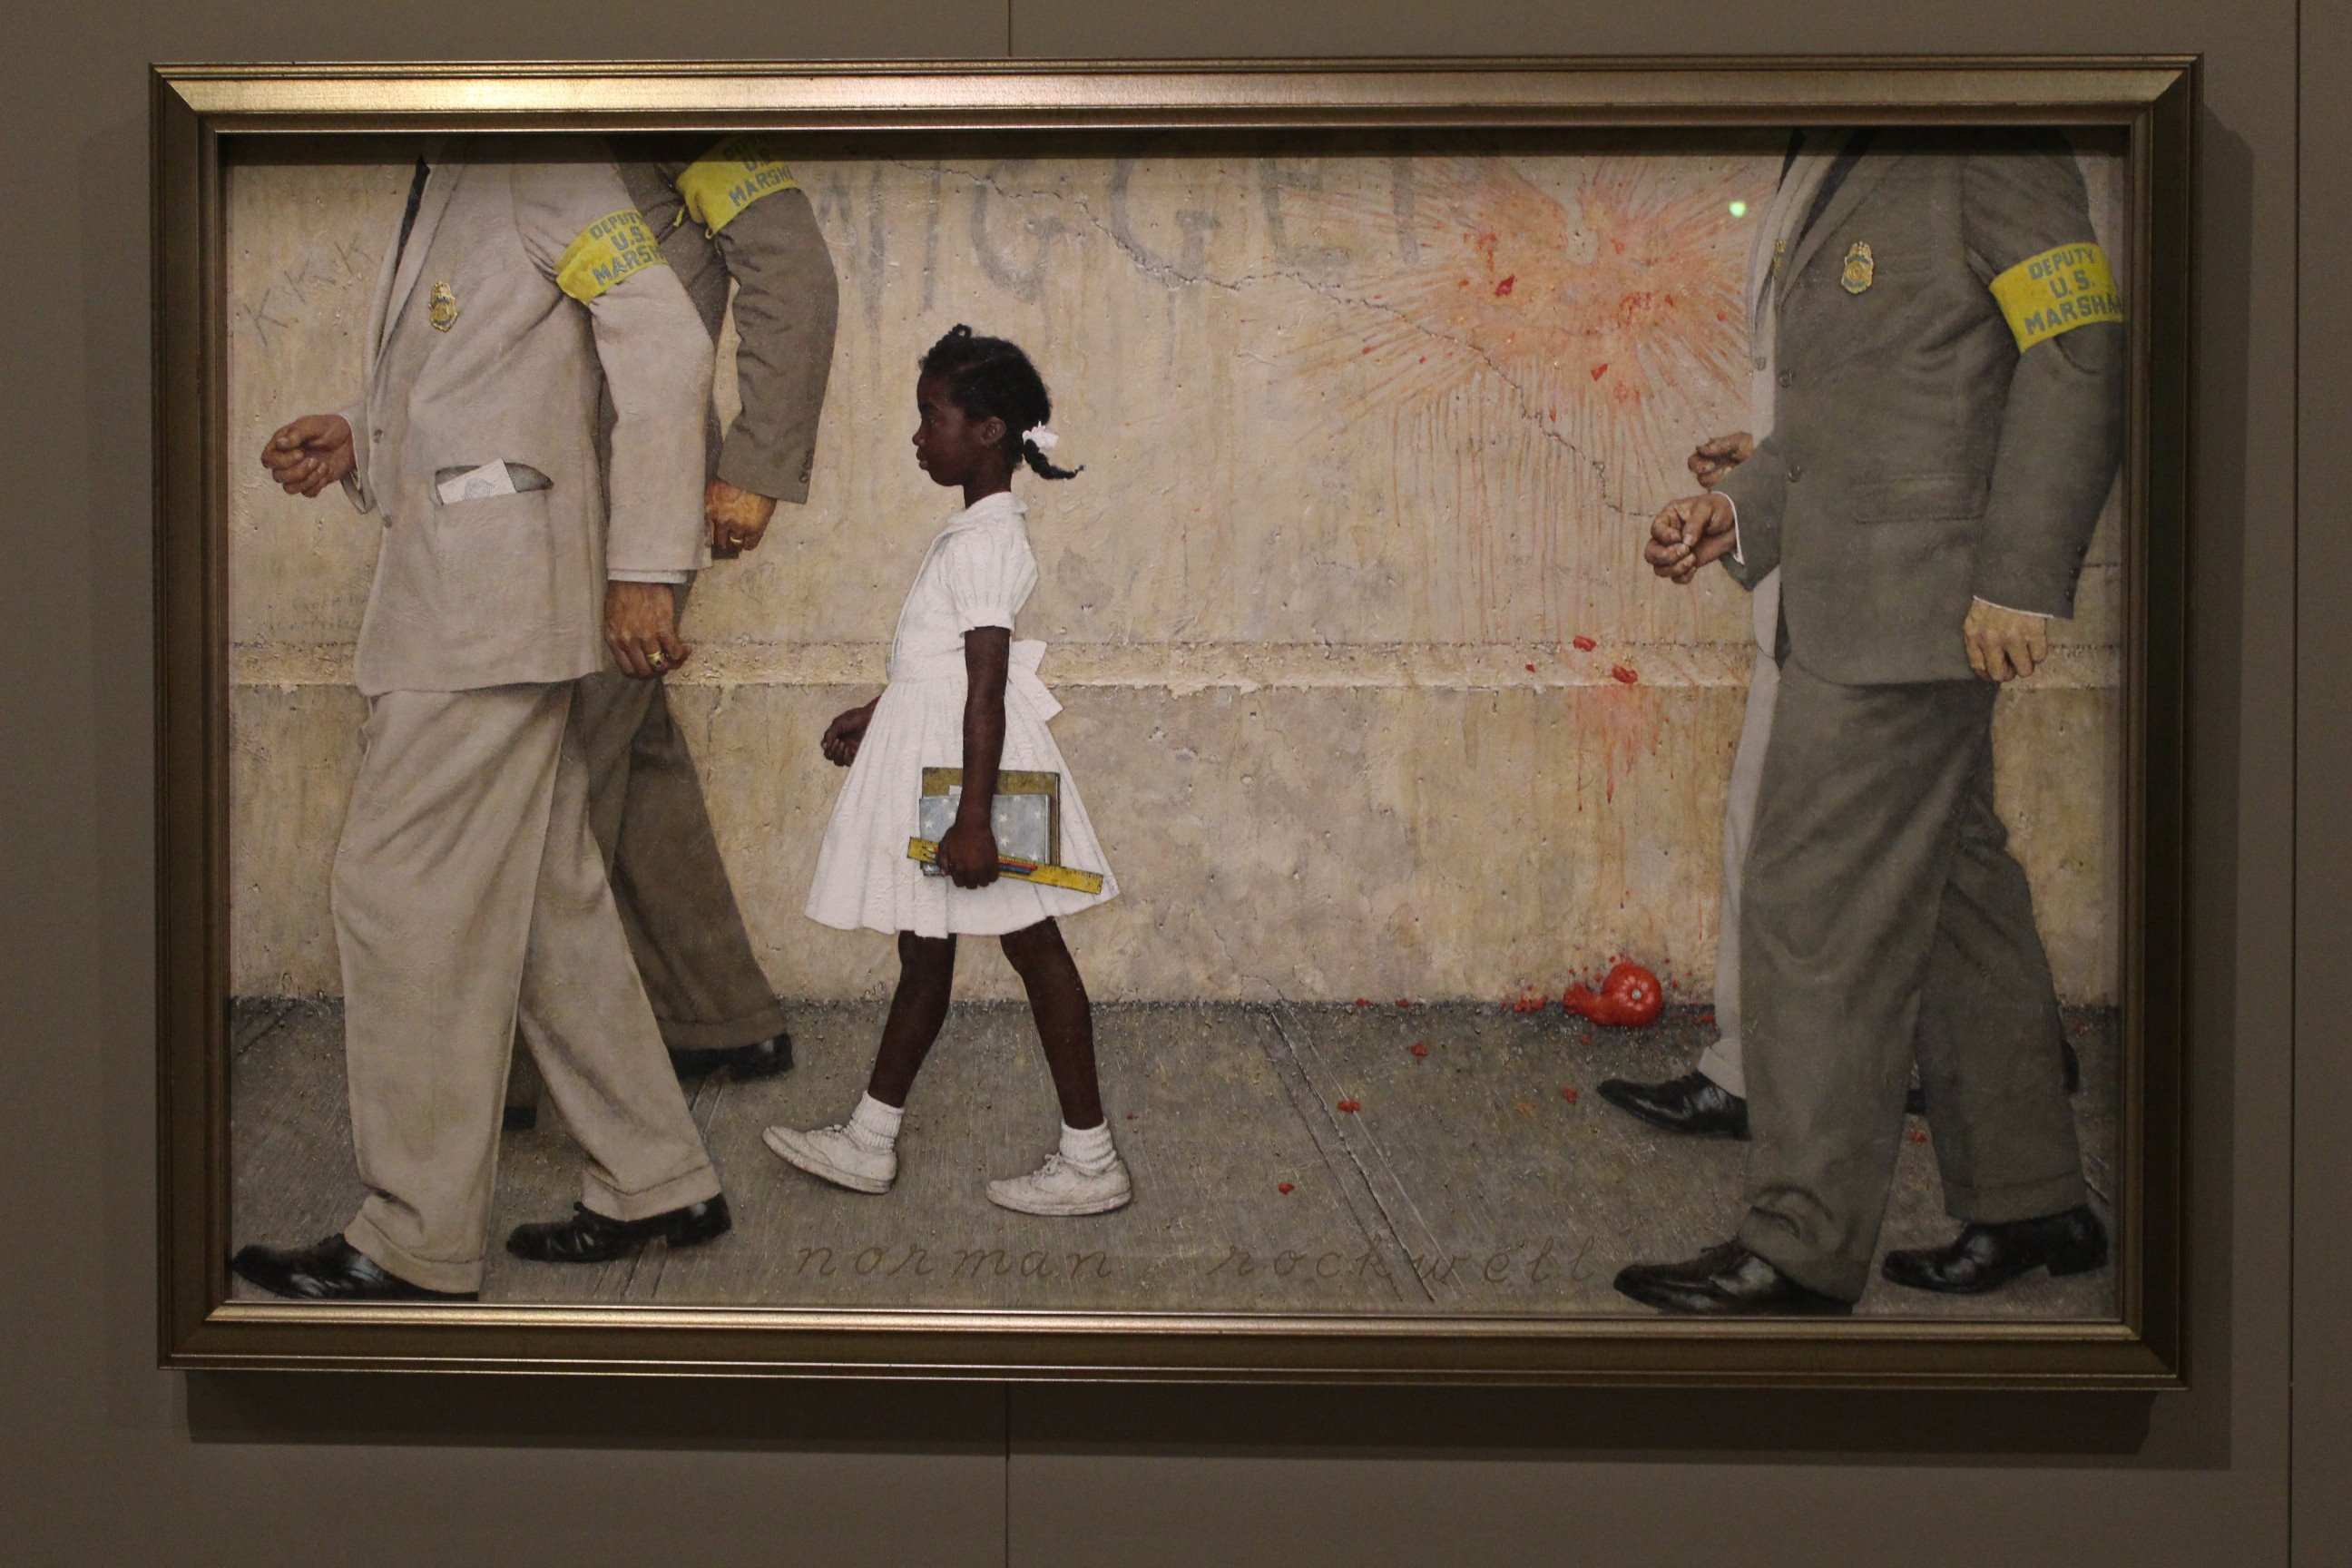 Rockwell's The Problem We All Live With